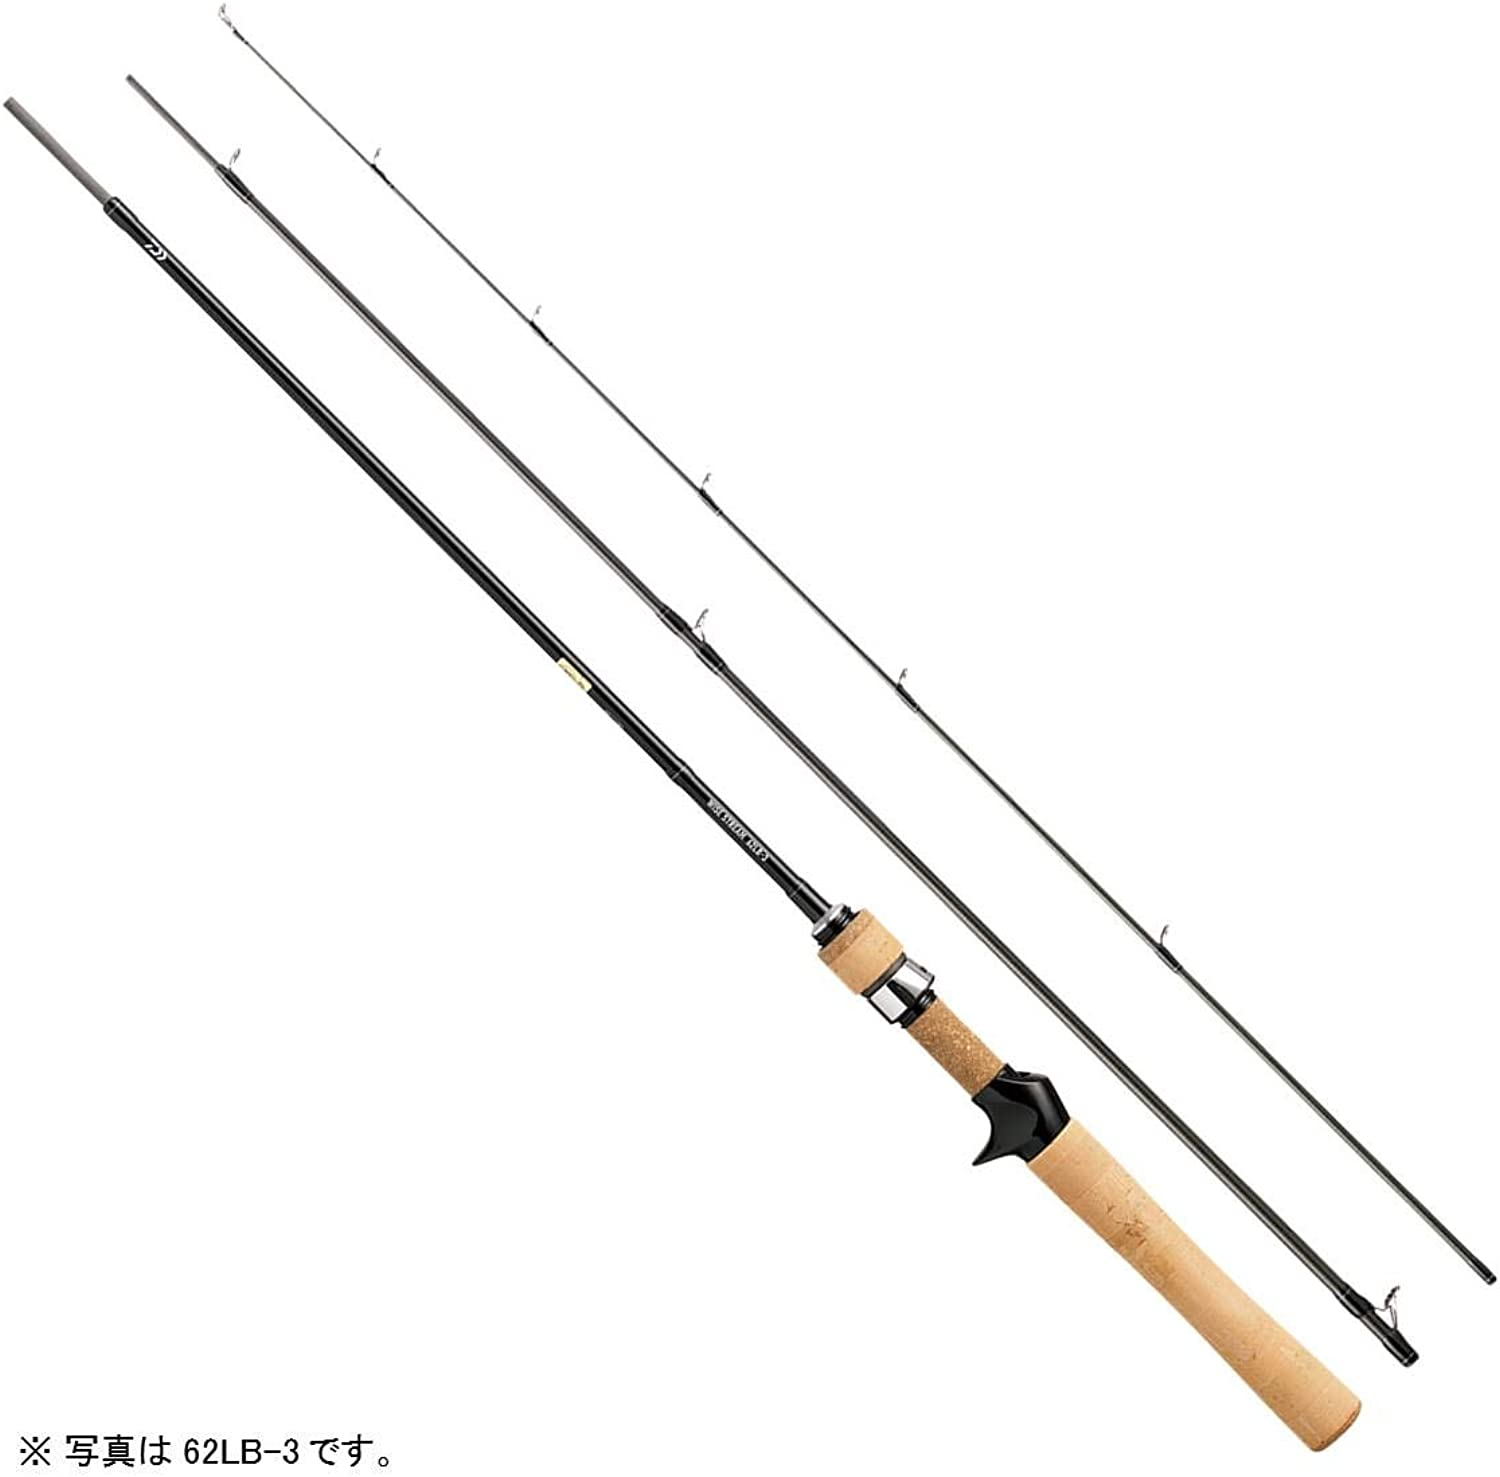 Daiwa trout Wise stream 62LB3